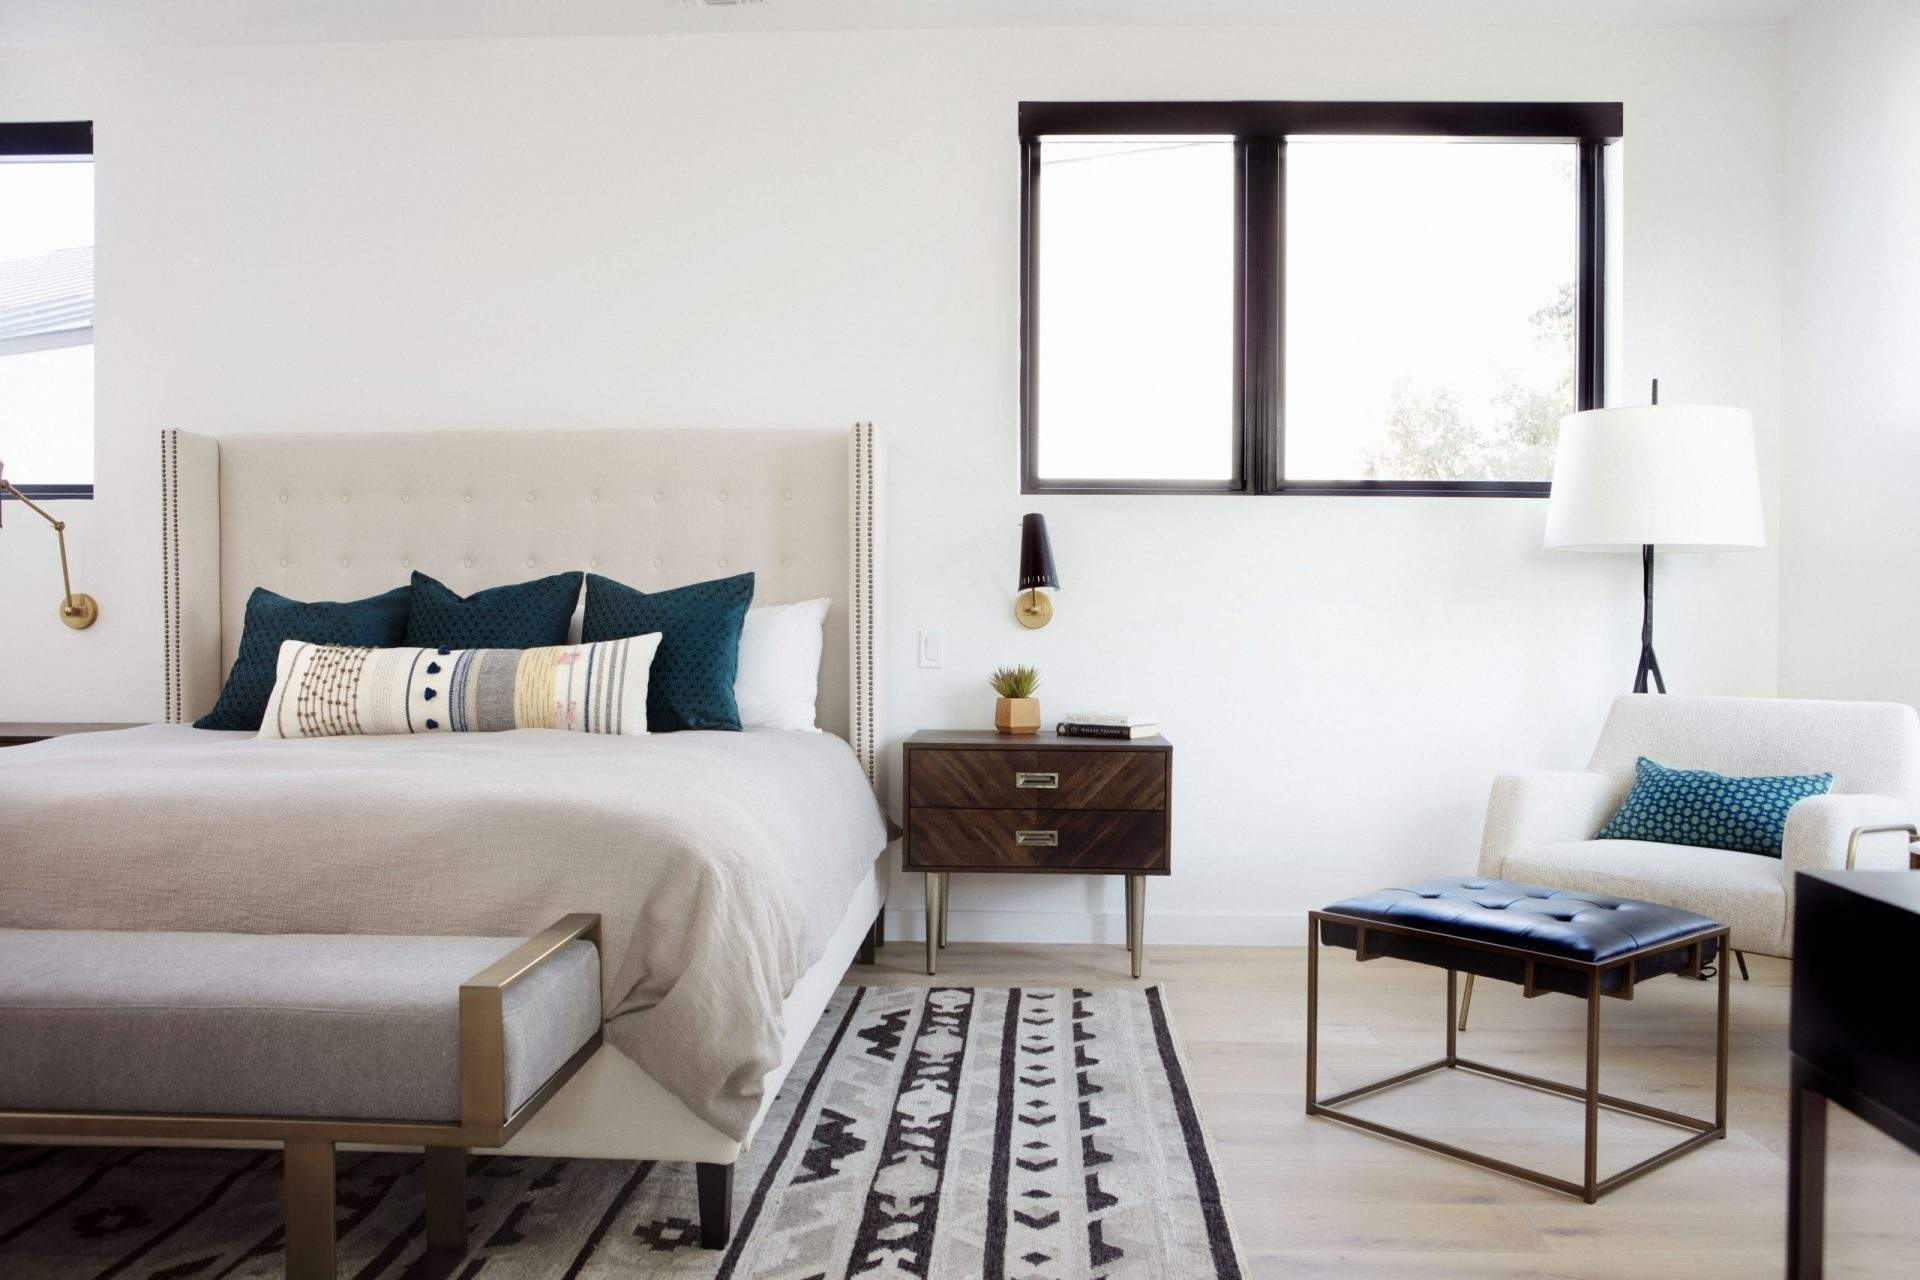 travis heights | bedroom with fabric bed, nightstand and stool at foot of the bed | austin, texas